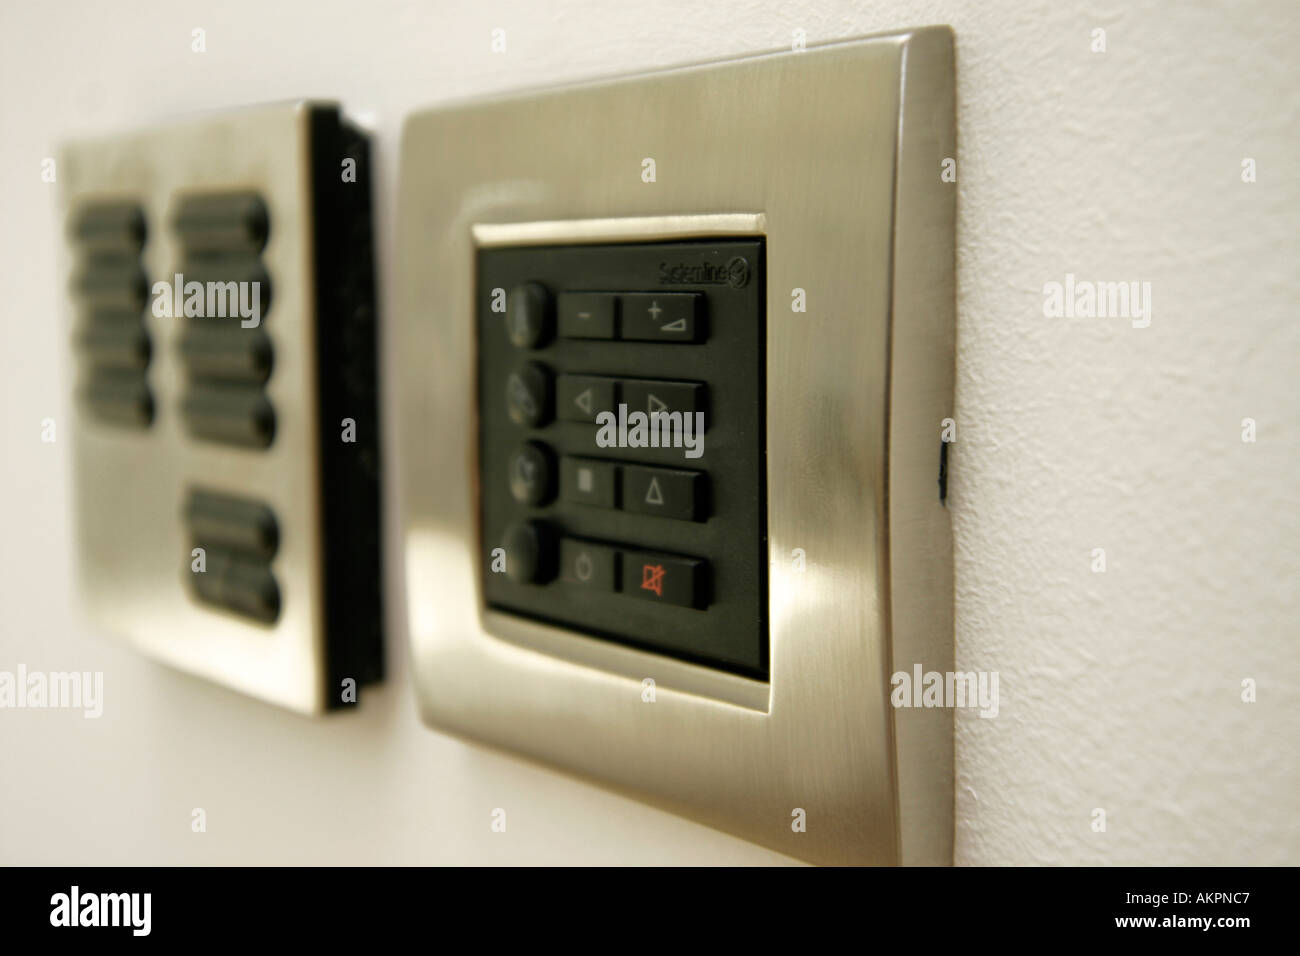 lighting control panel and door entry system on a modern apartment